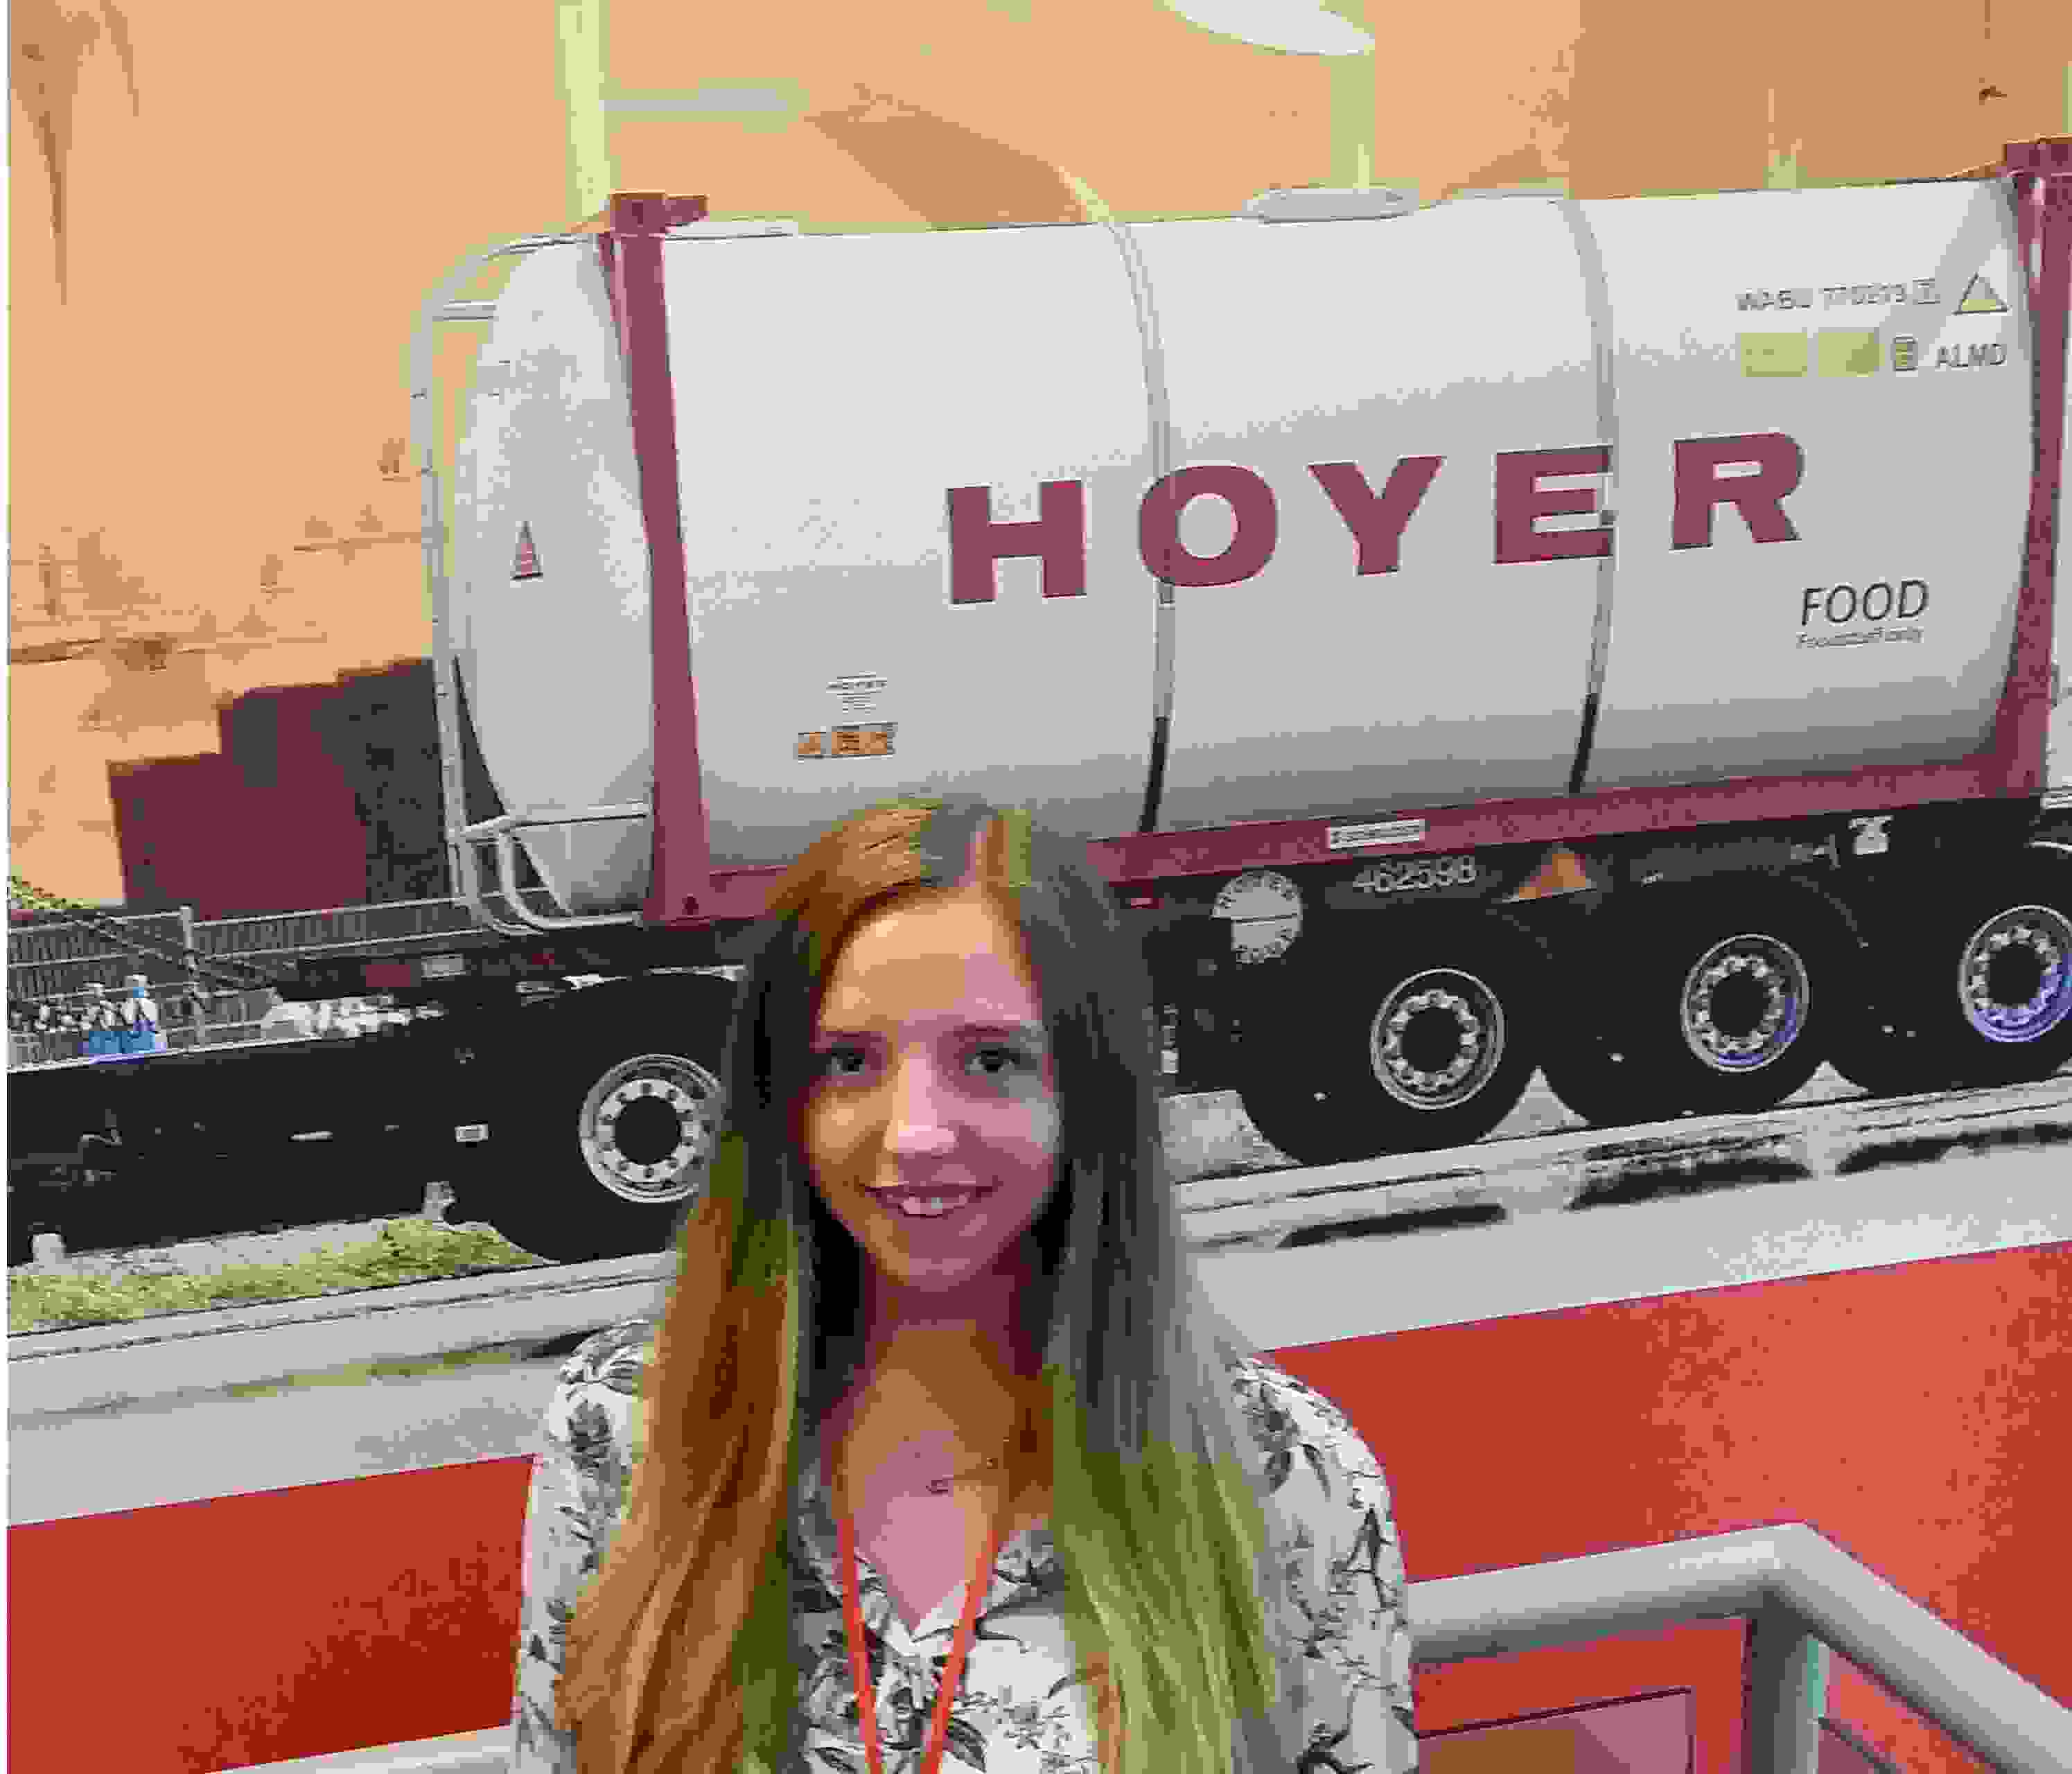 Location Transport Manager, Hannah Provan